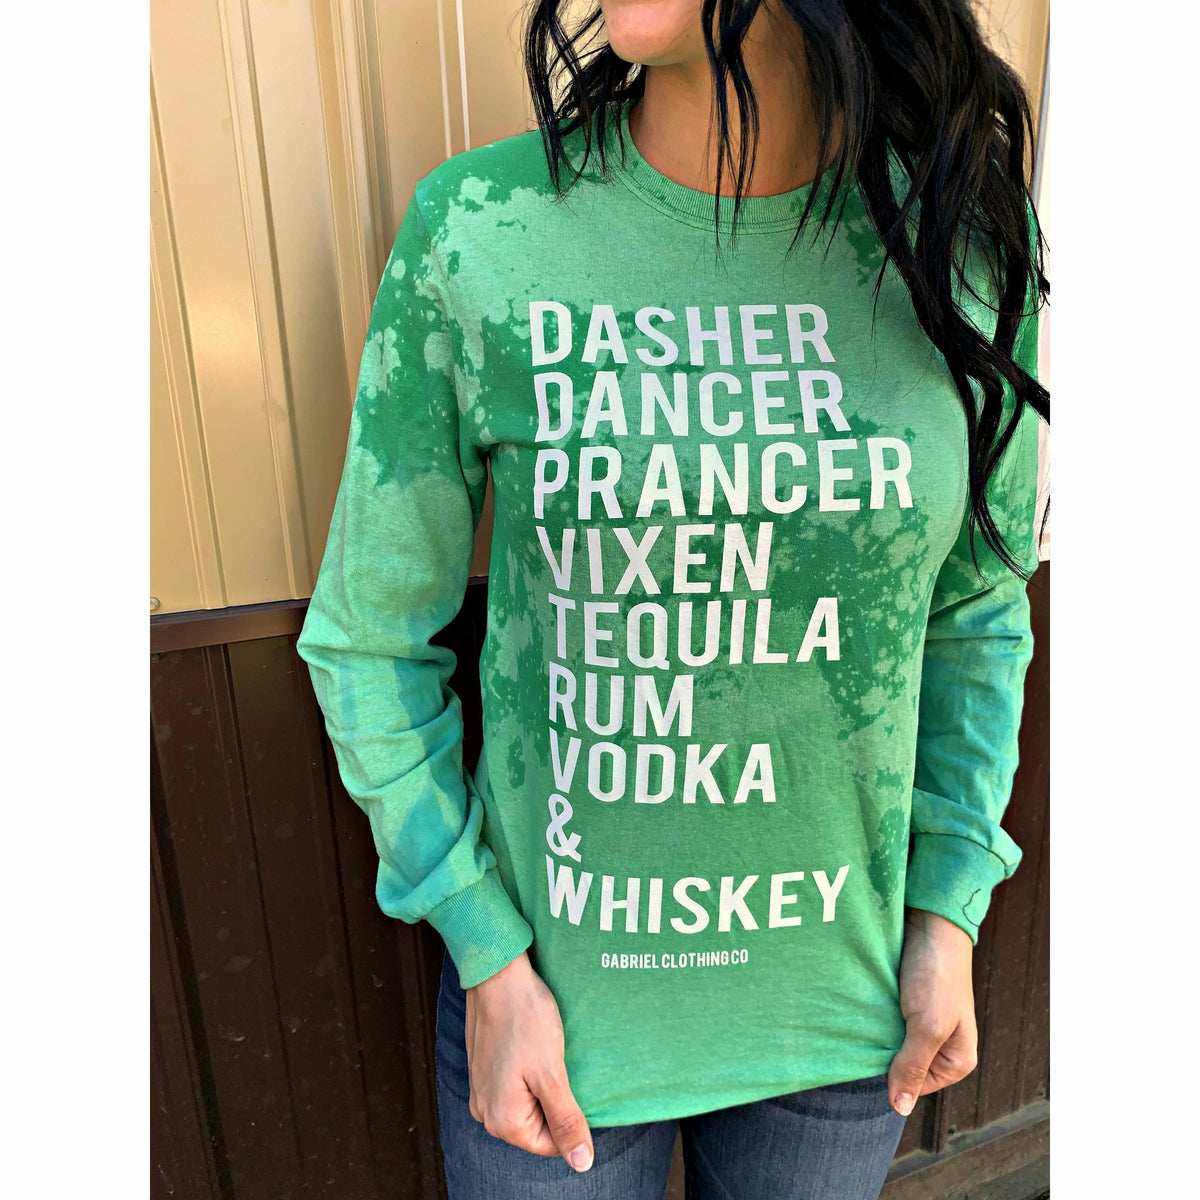 Reindeer Games Distressed (Long Sleeve or tee) t-shirt